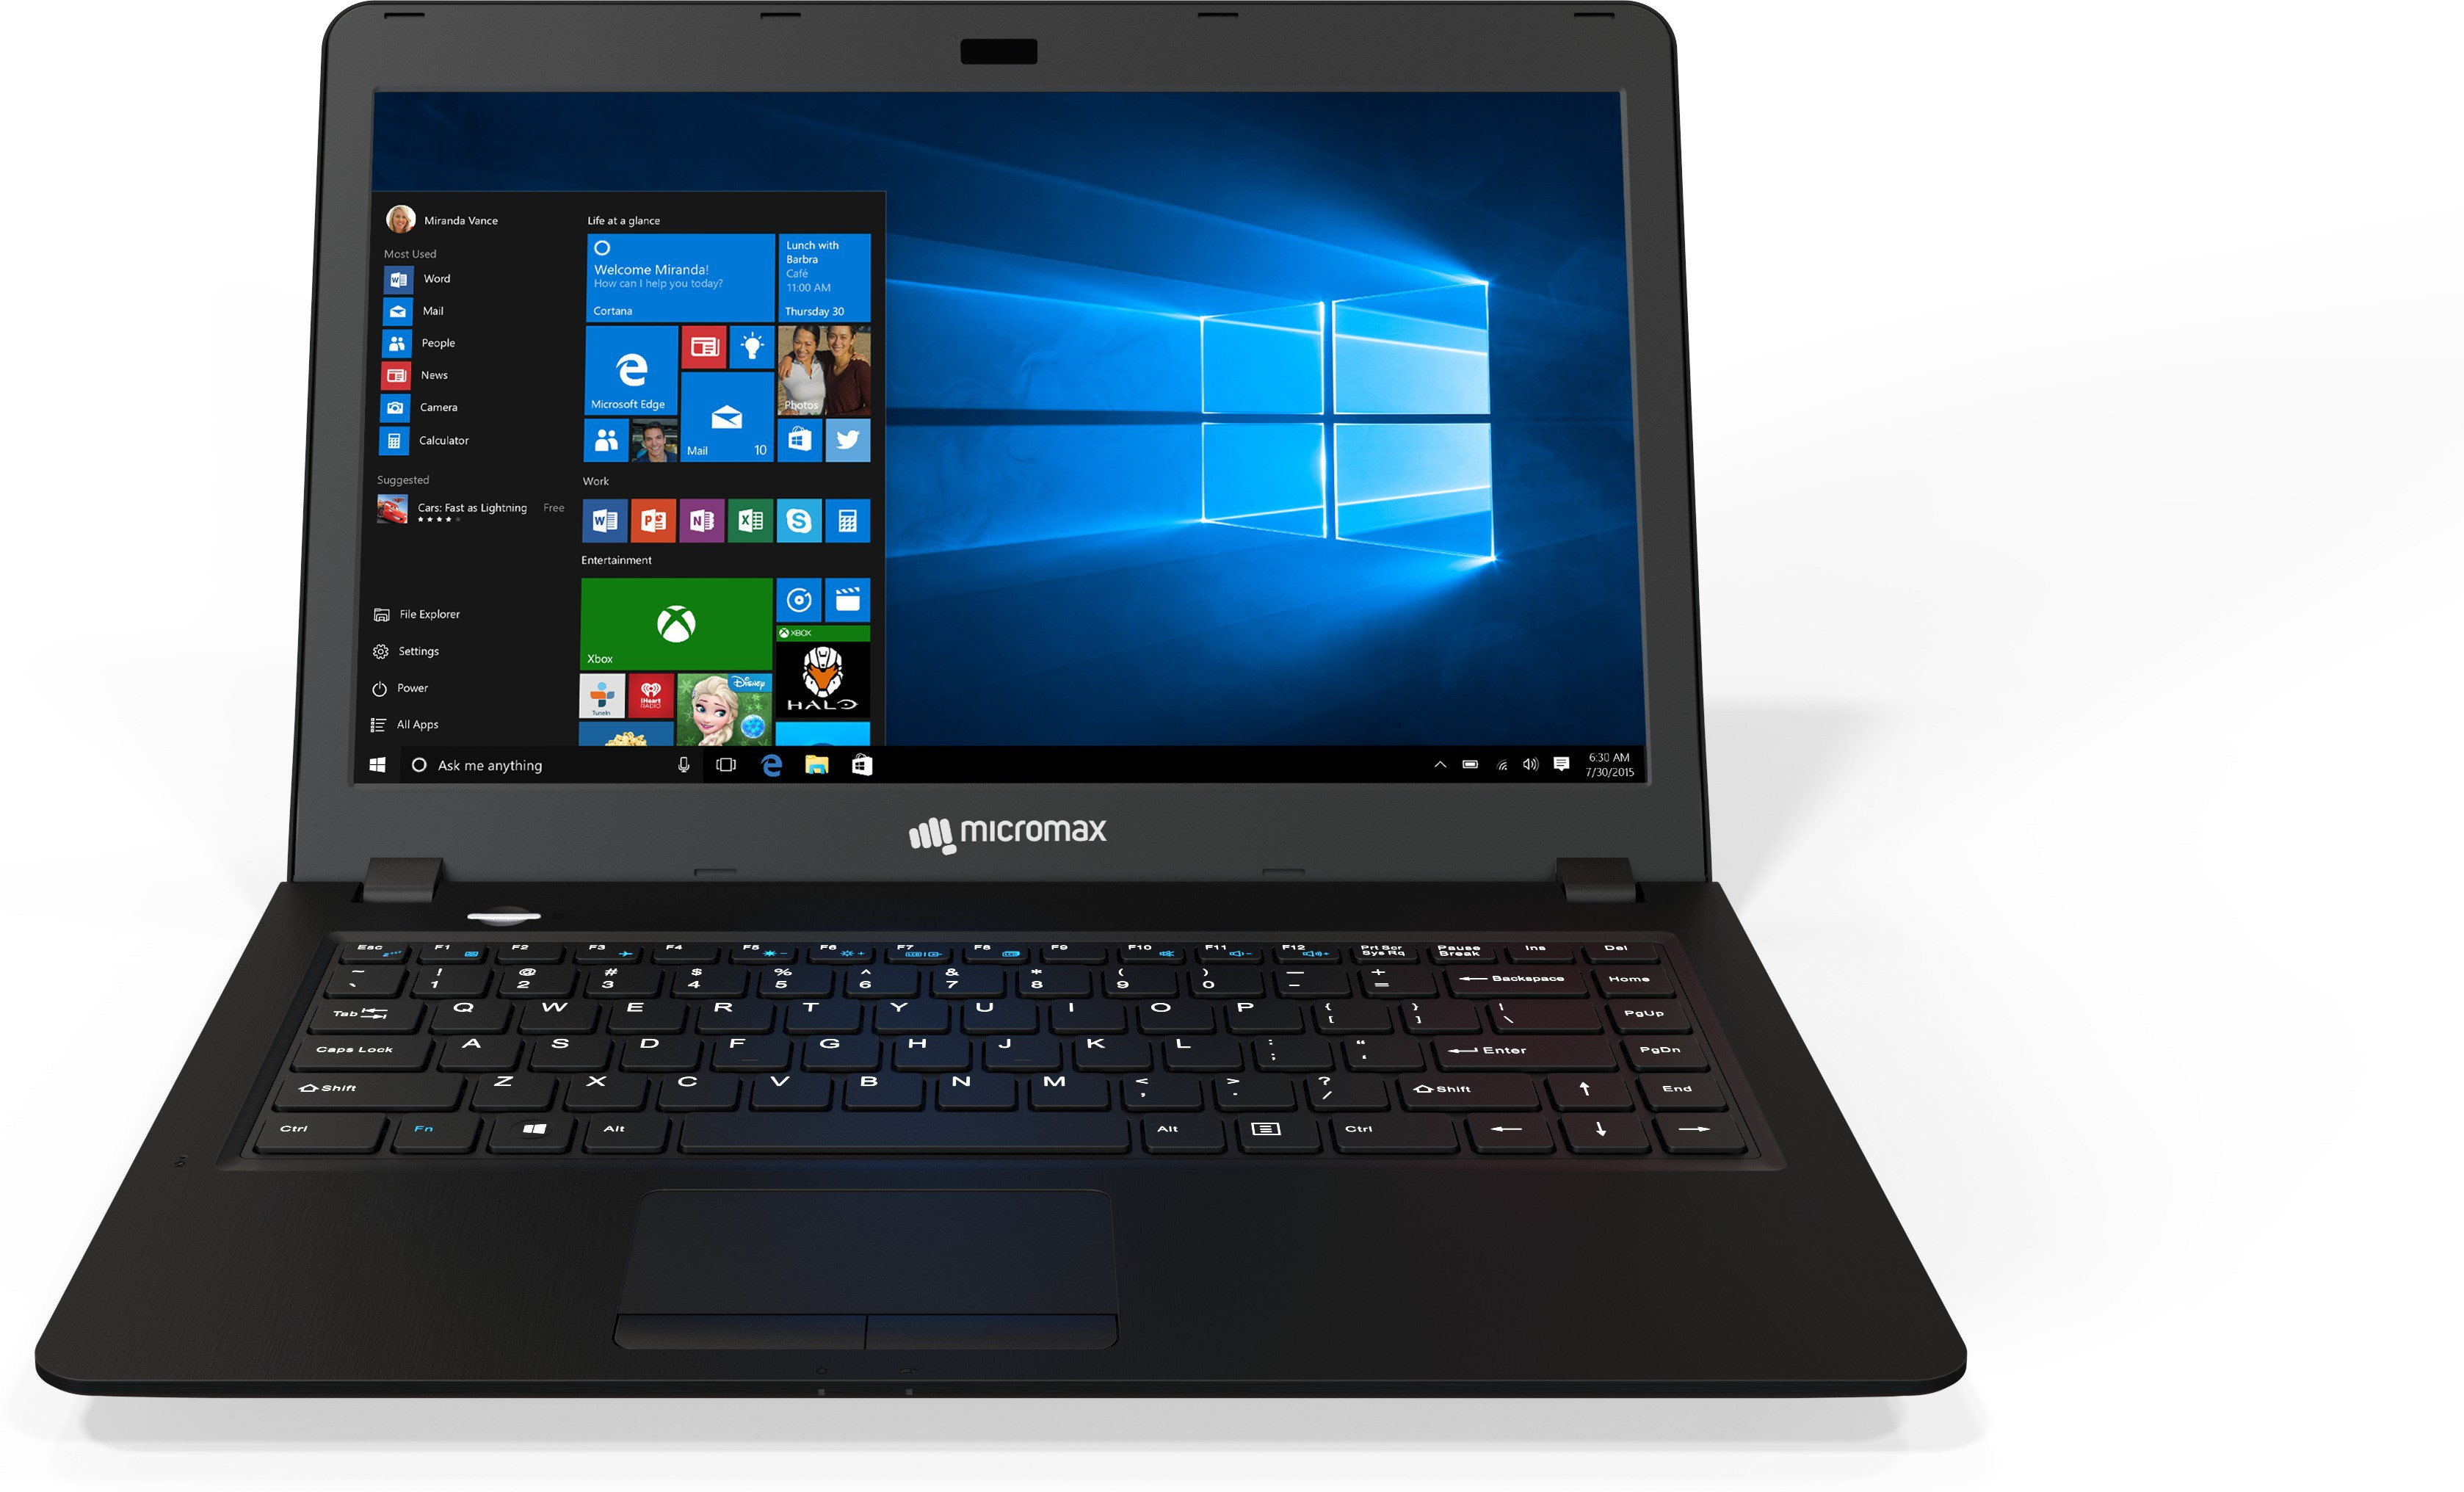 Deals - Chennai - From ₹16990 <br> Micromax Budget Laptops<br> Category - computers<br> Business - Flipkart.com